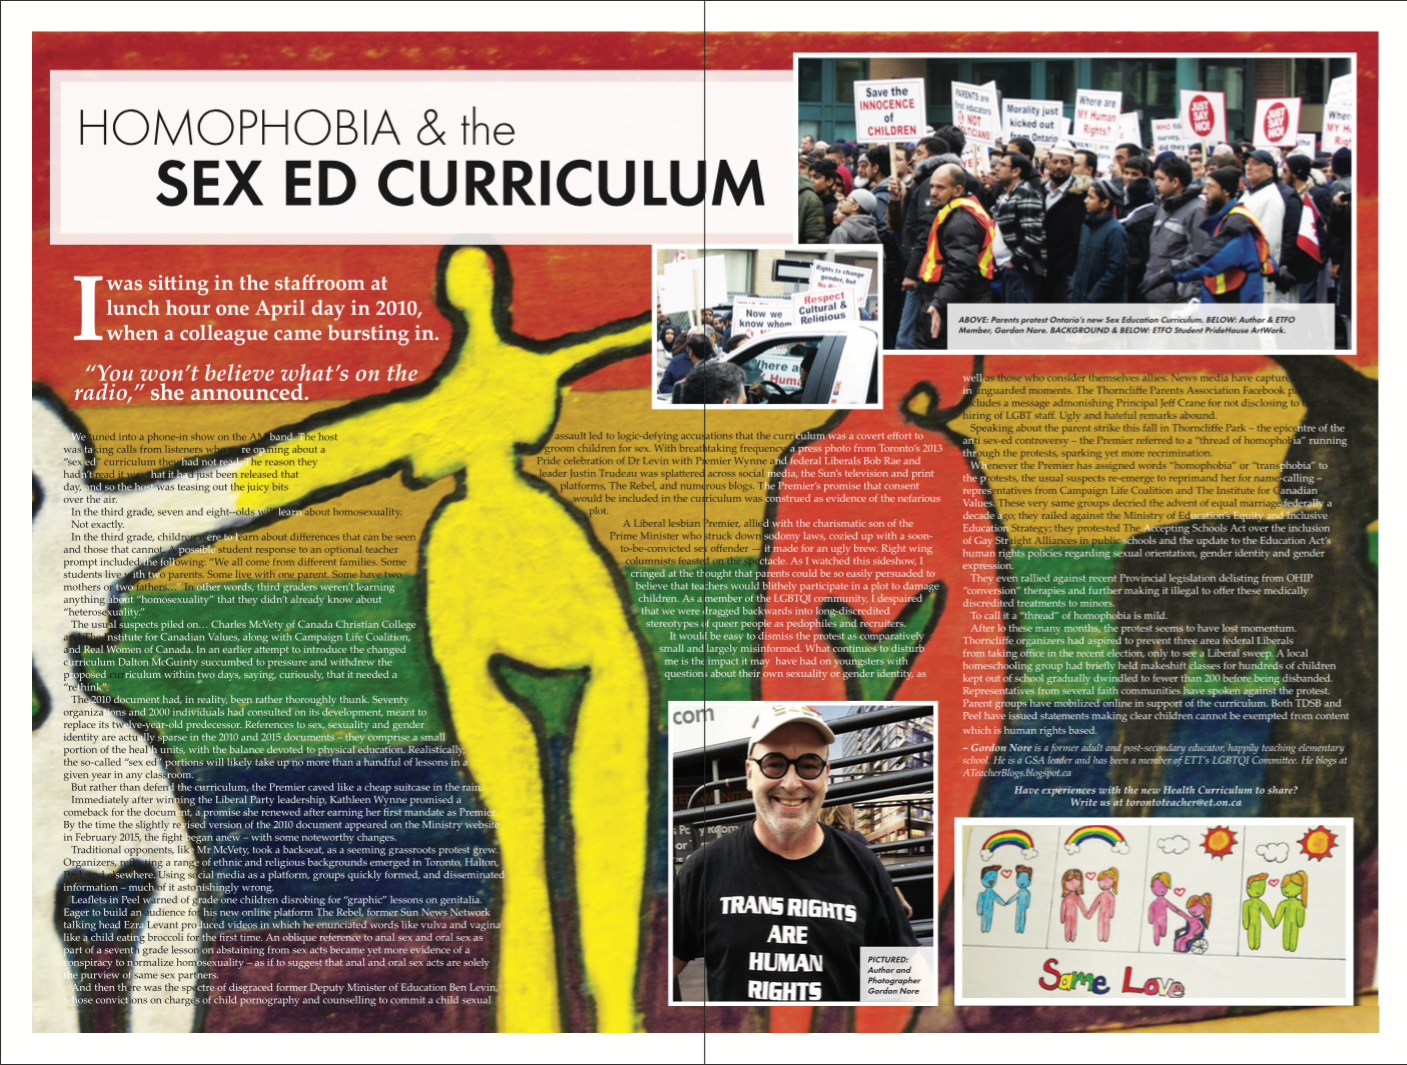 Homophobia and the Sex Ed Curriculum G Nore Toronto Teacher 6-1 Winter 2016